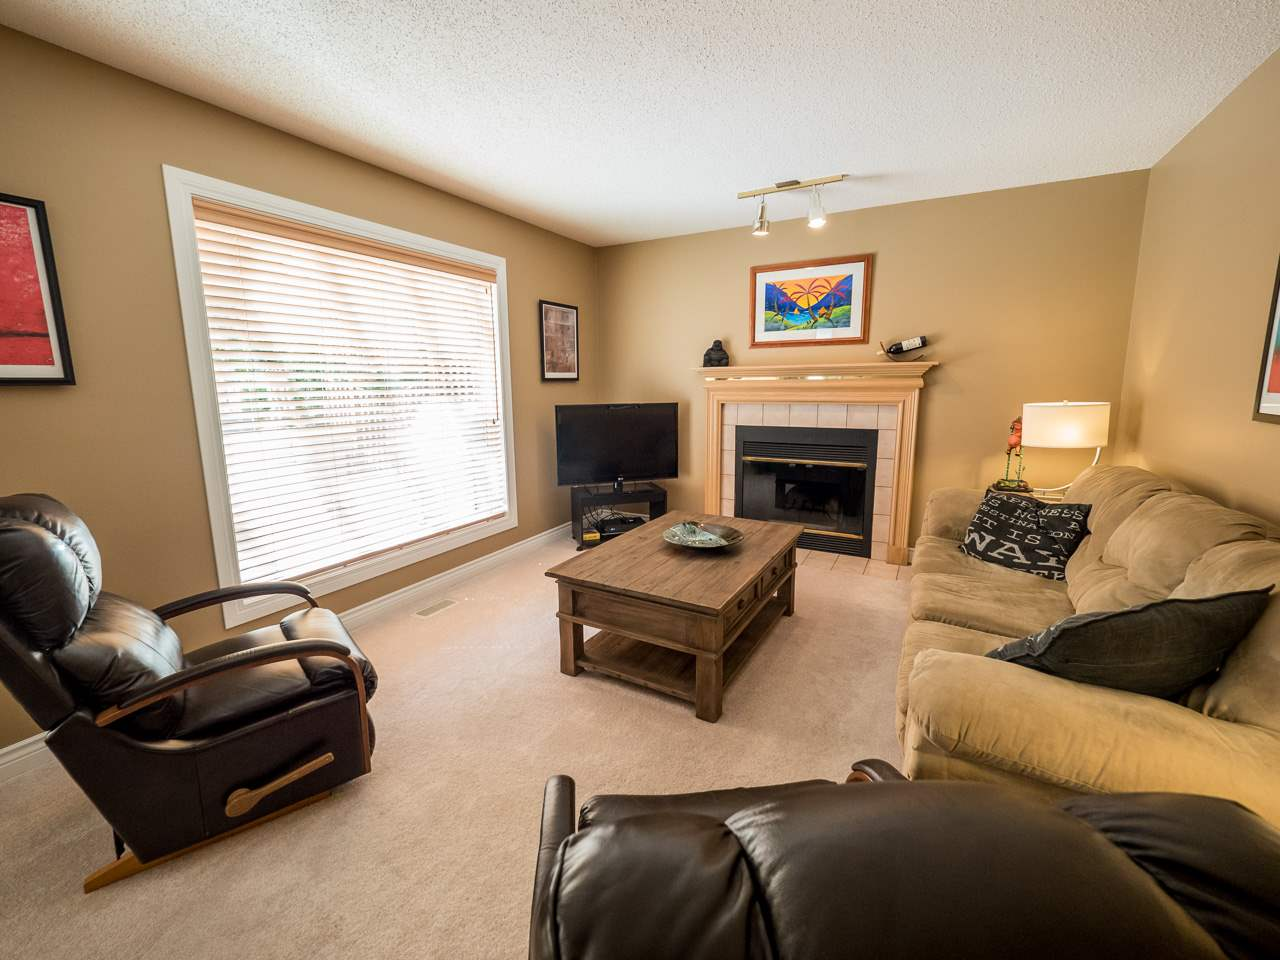 Photo 11: 205 WEBER Place in Edmonton: Zone 20 House for sale : MLS® # E4077601